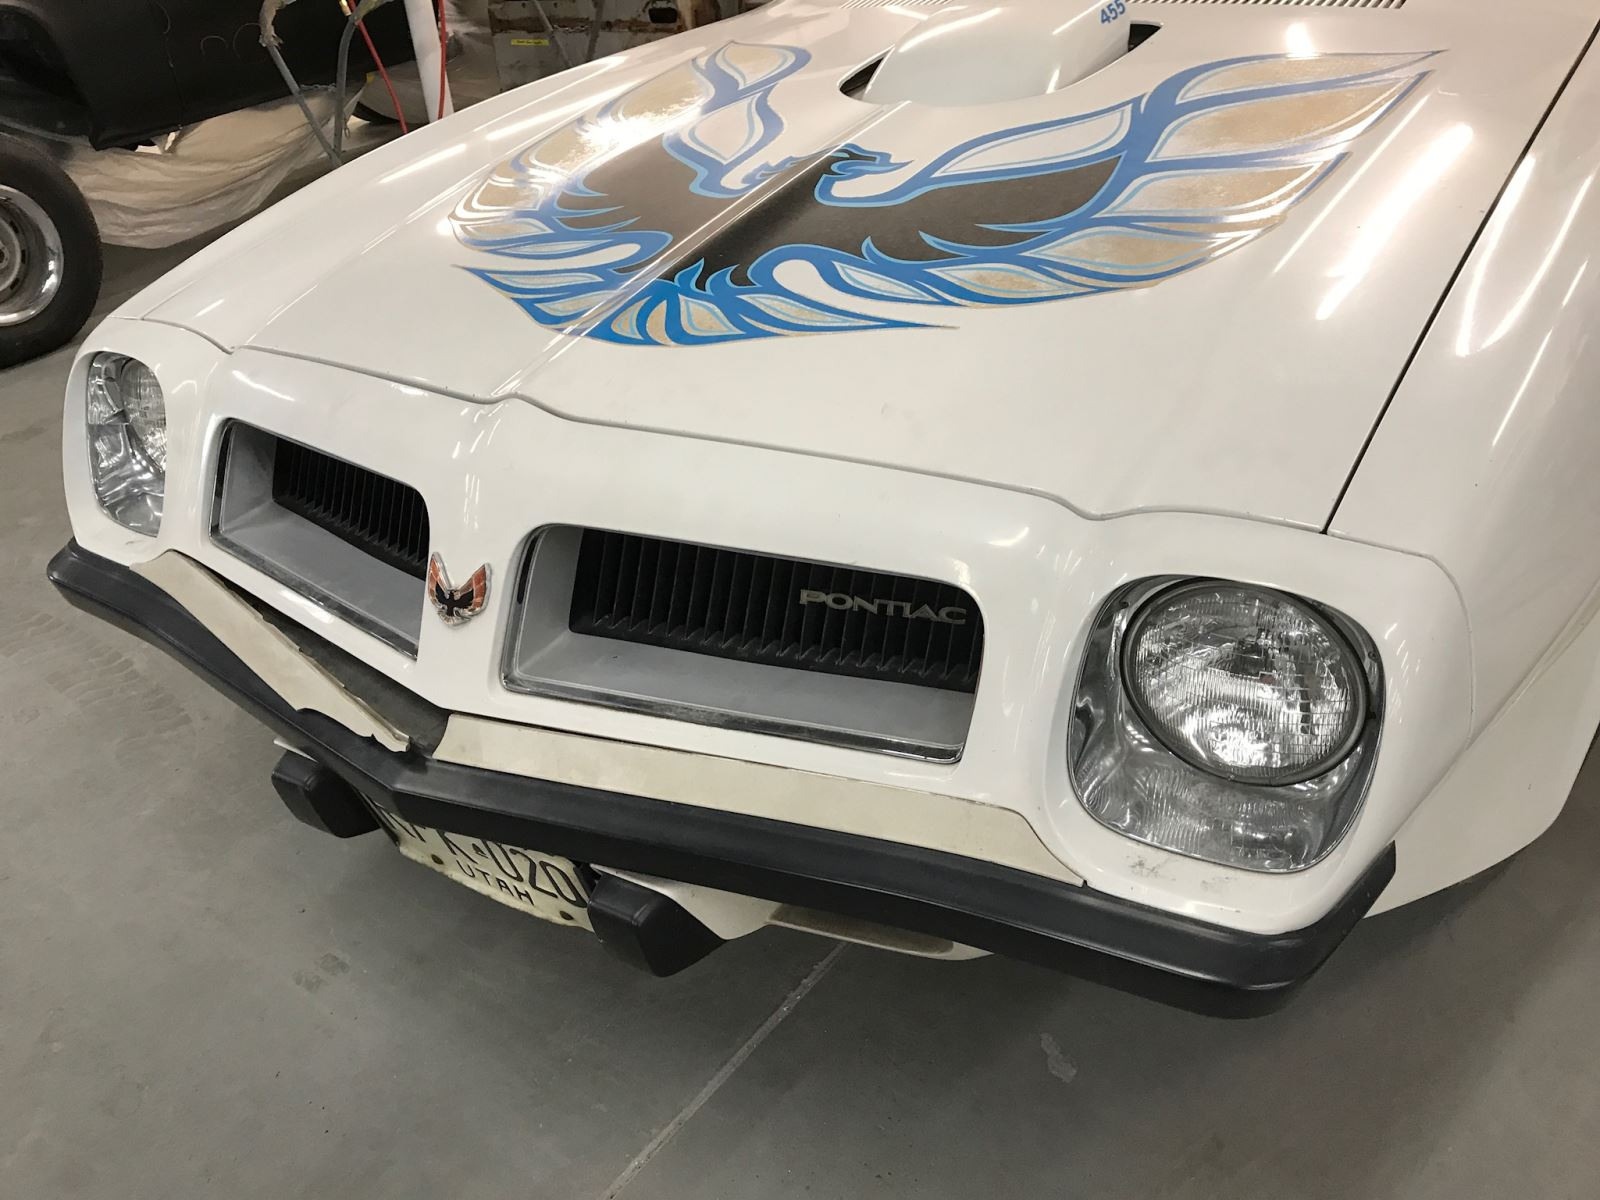 1974 Pontiac Trans Am | Wasatch Customs - image #5